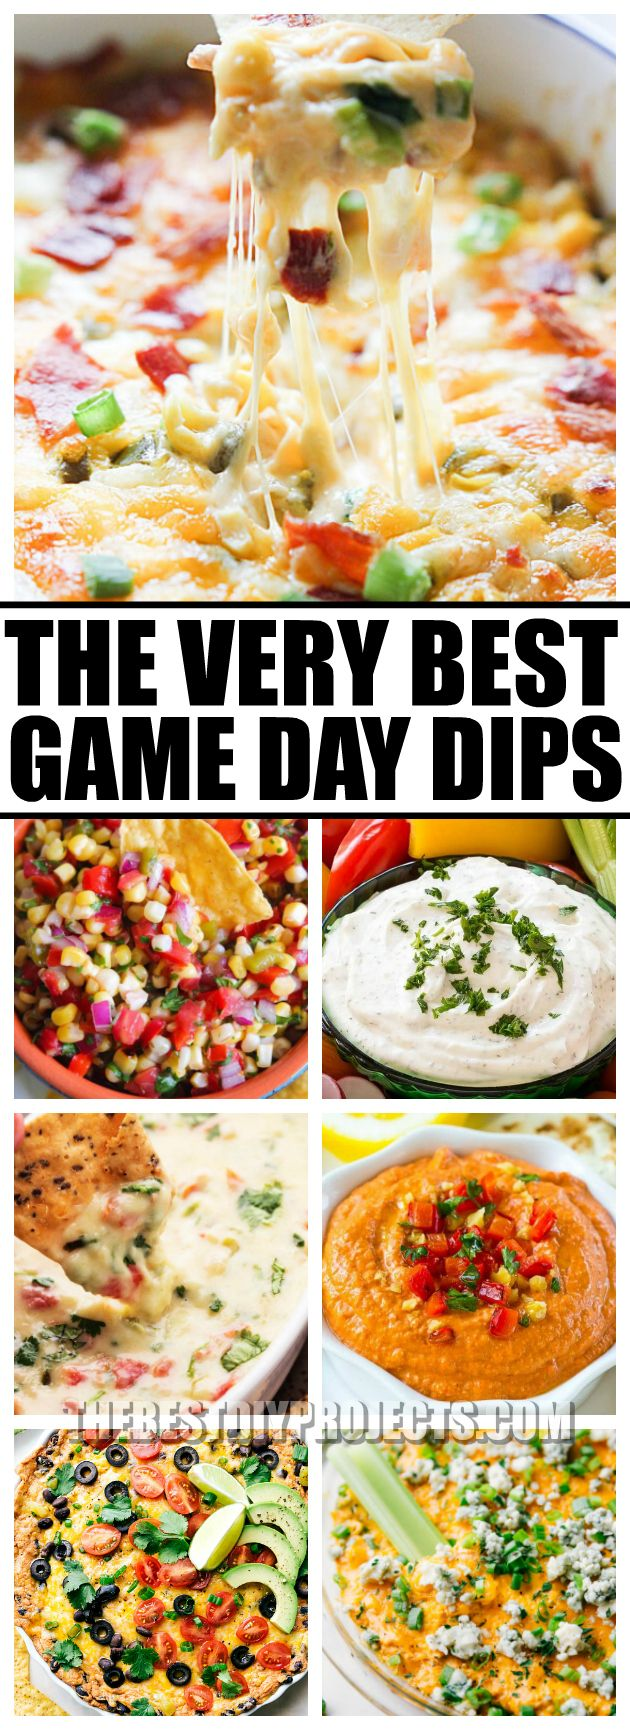 For all of your game day parties, you need The Very Best Game Day Dips. With amazing flavors and easy preparation, these dips are sure to be a touchdown!